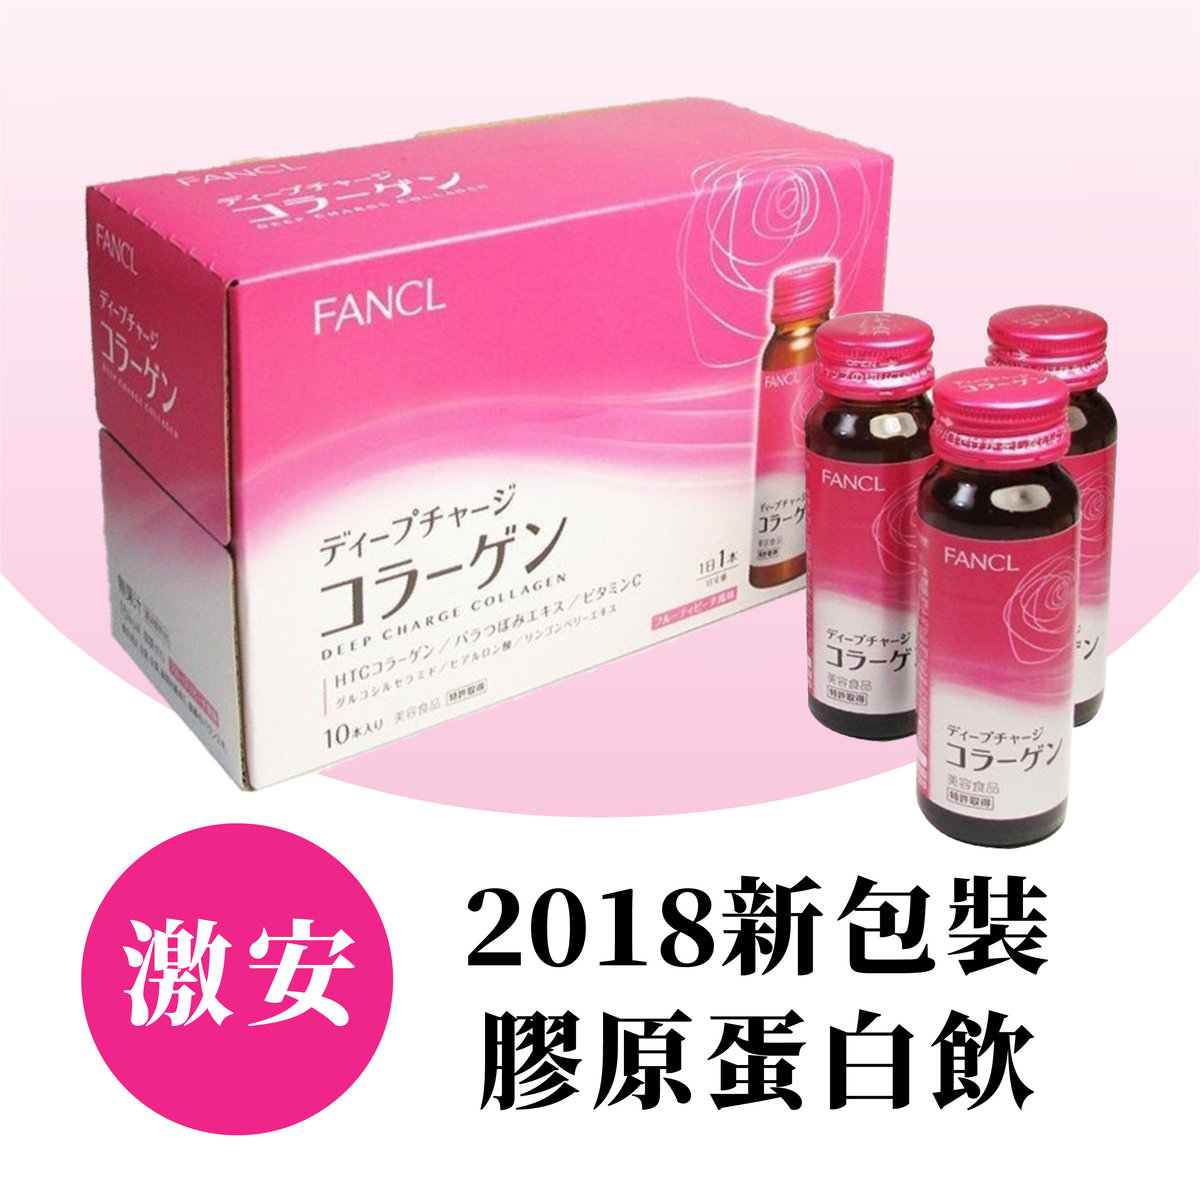 1 Box(10 bottles) HTC Deep Charge Collagen 2018 New Packaging (4908049429690)